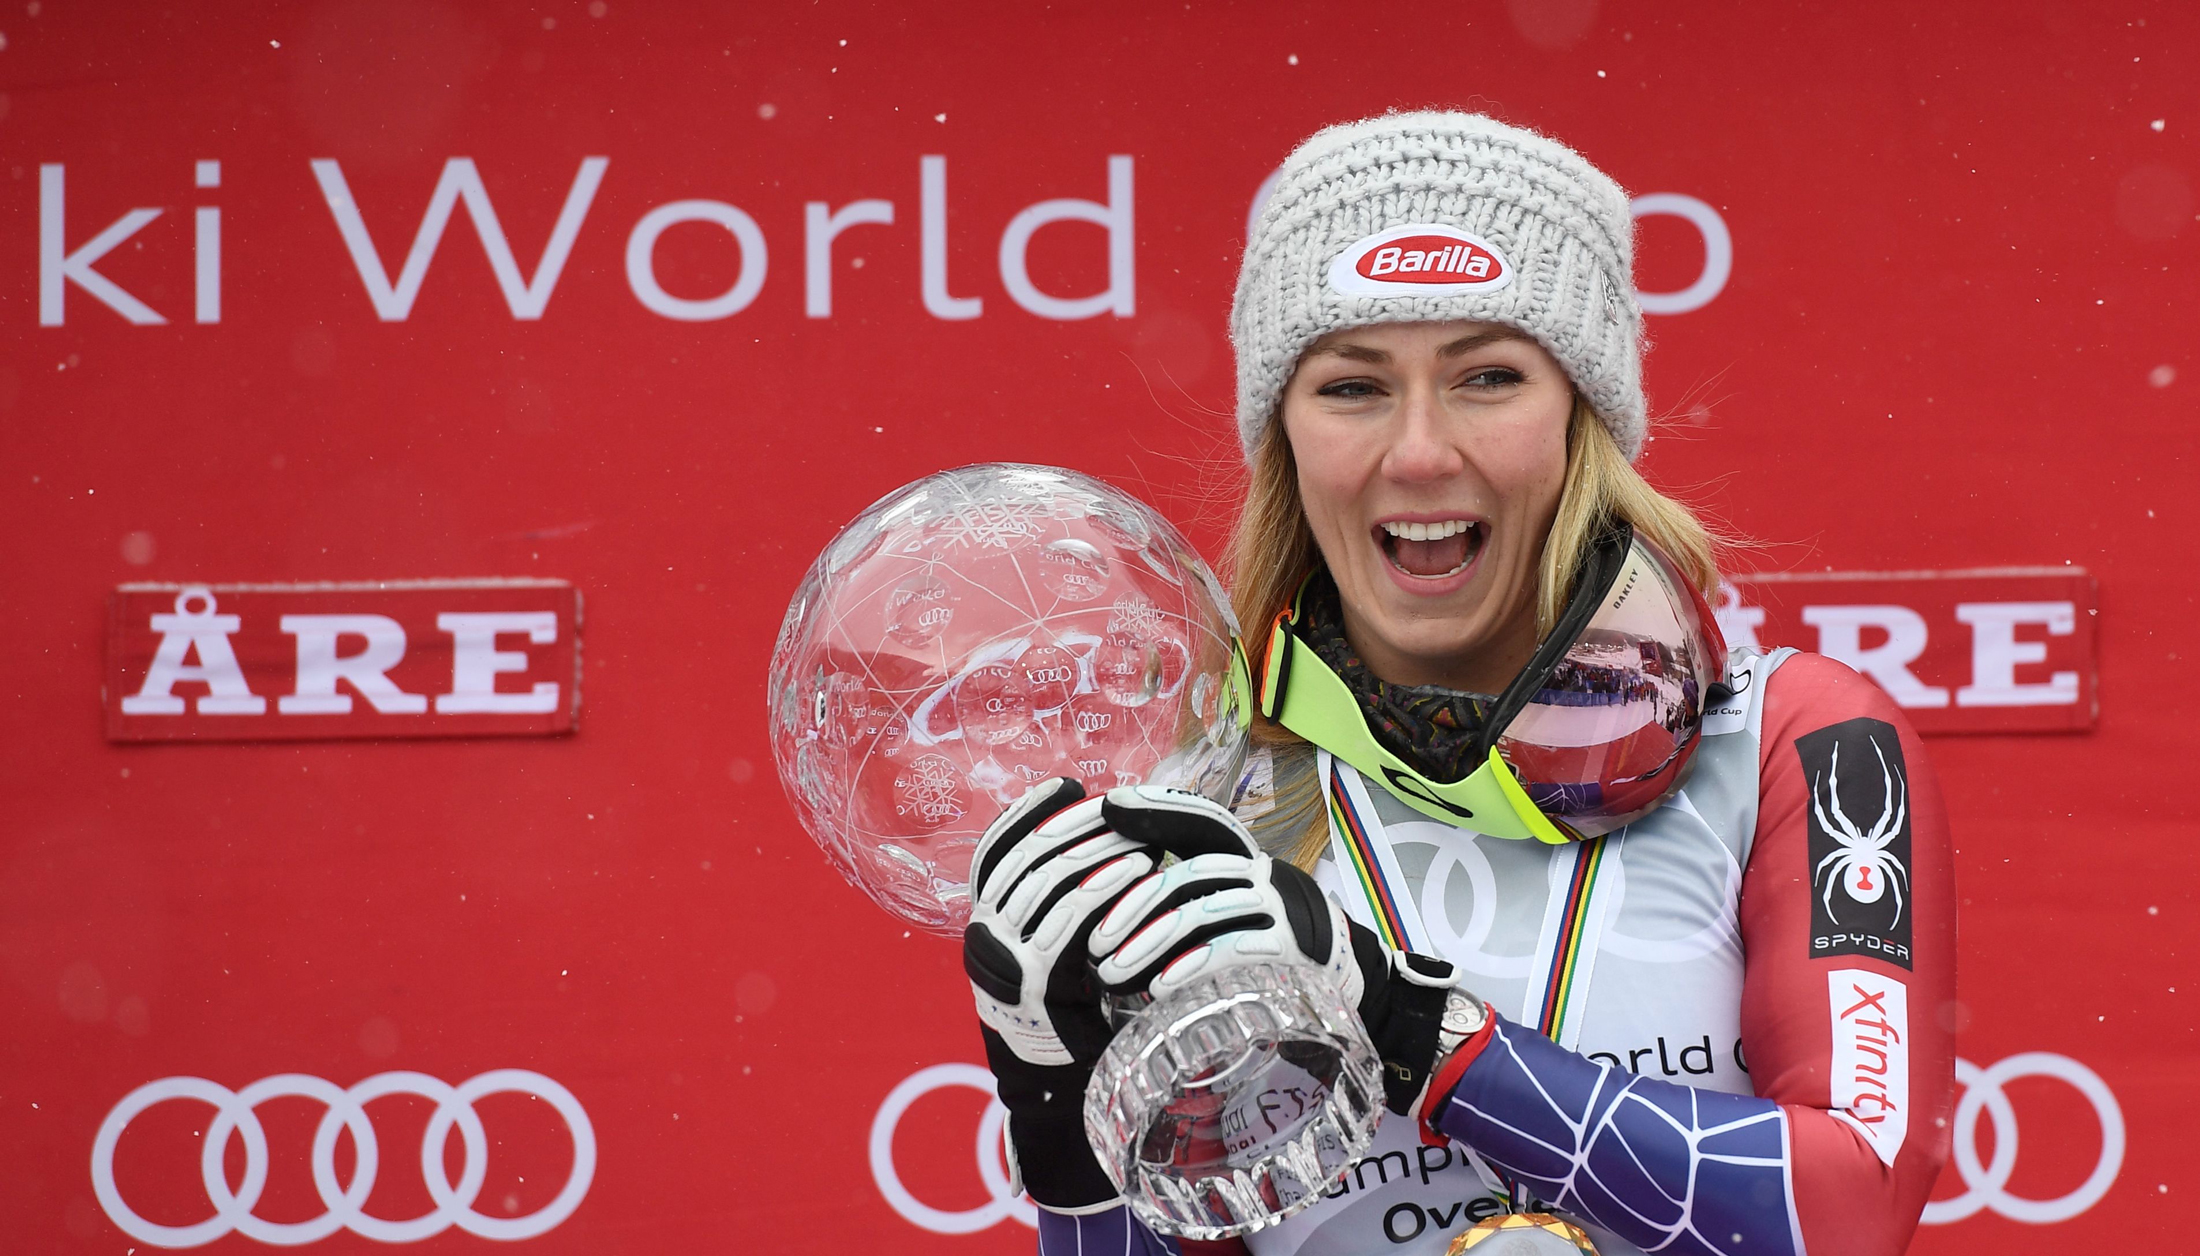 Mikaela Shiffrin won the overall World Cup title for the second-straight year. (Getty Images/Agence Zoom - Alain Grosclaude)